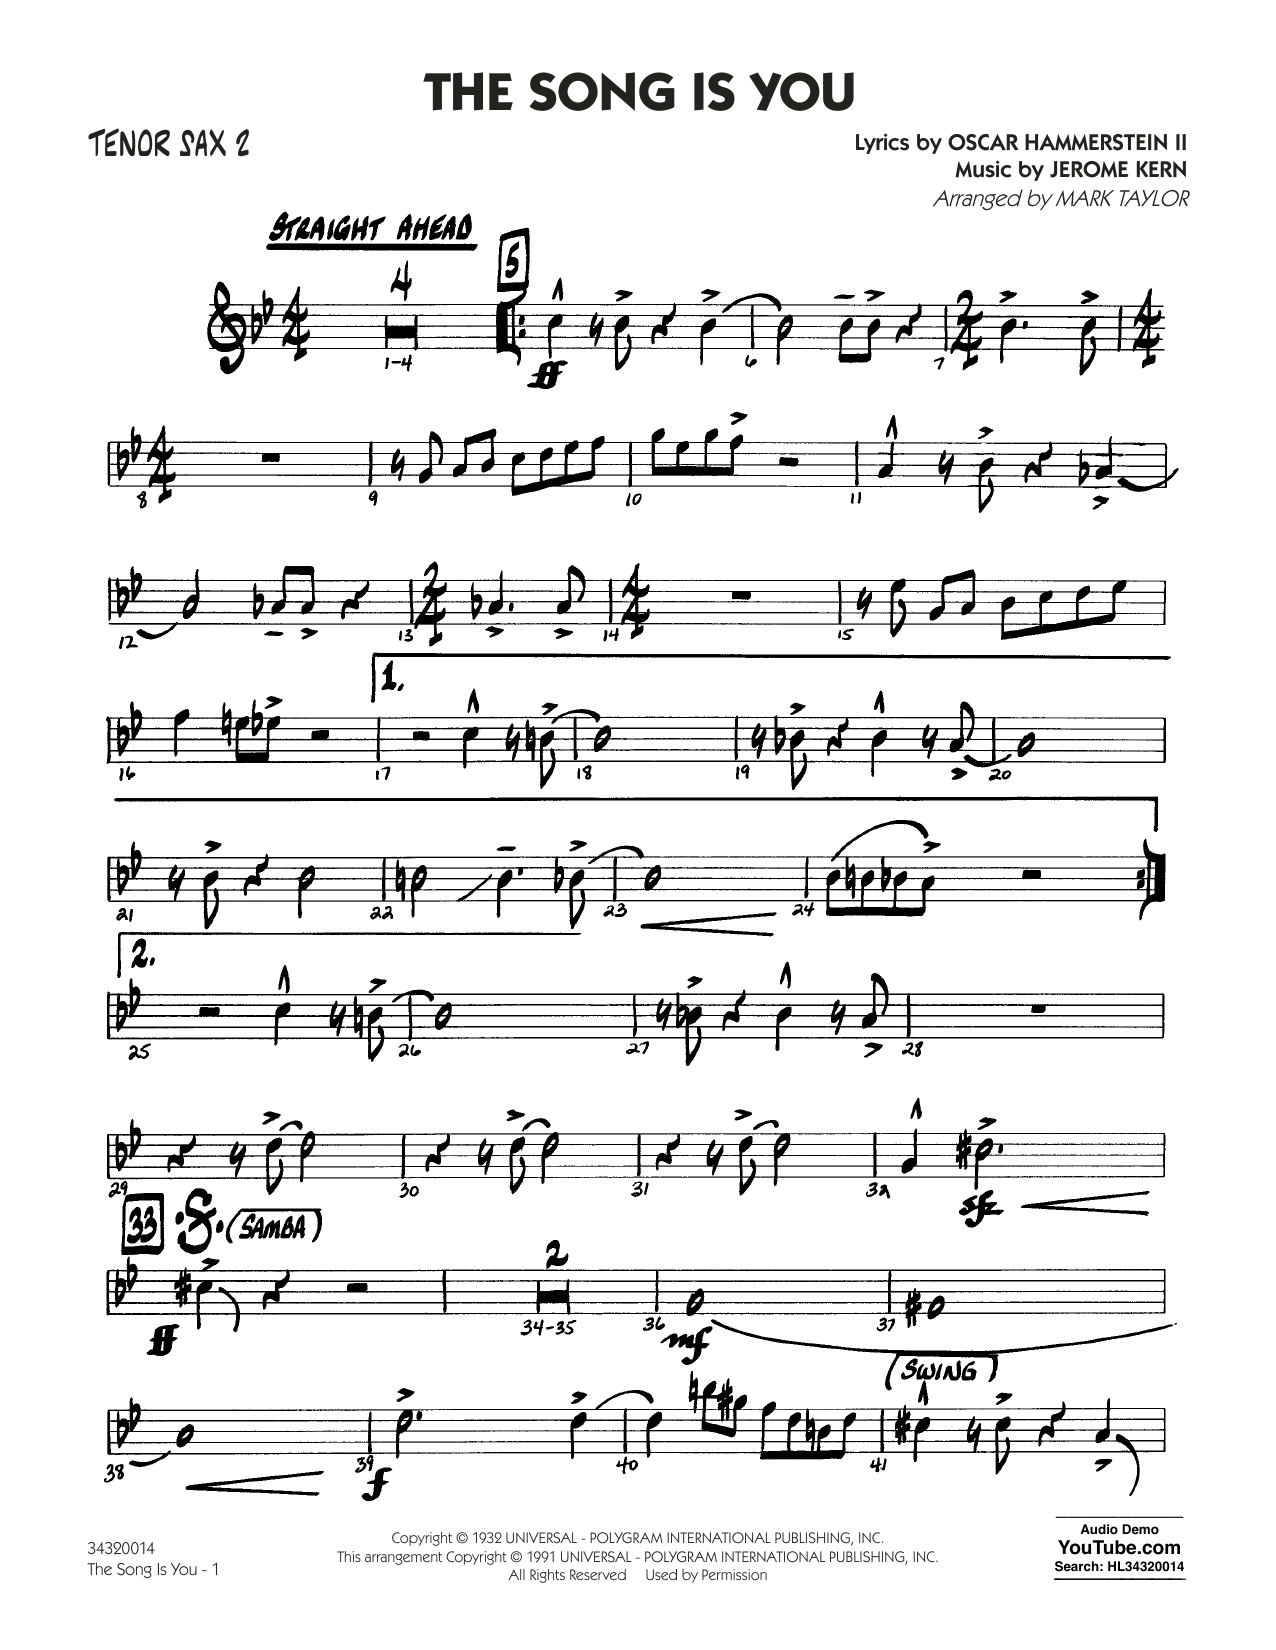 Mark Taylor The Song Is You - Tenor Sax 2 sheet music notes and chords. Download Printable PDF.